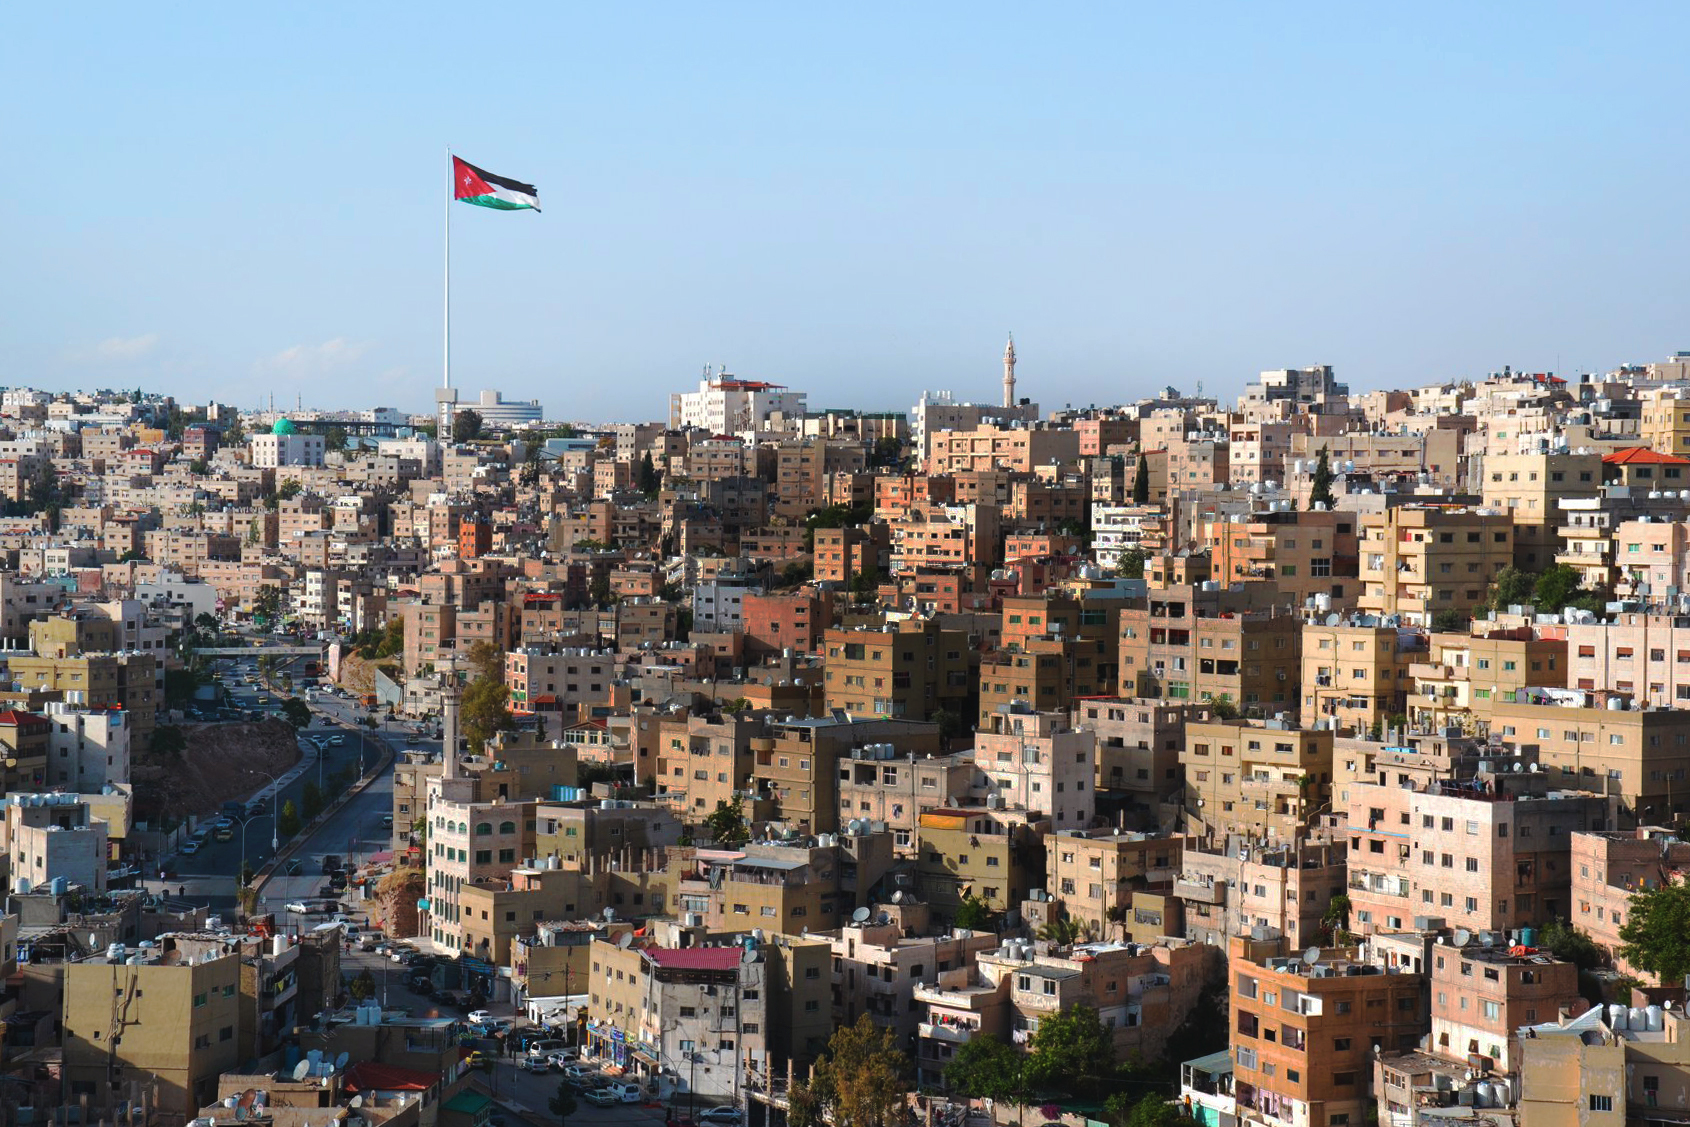 SQN2: EU Action in Jordan and Challenging International Aid